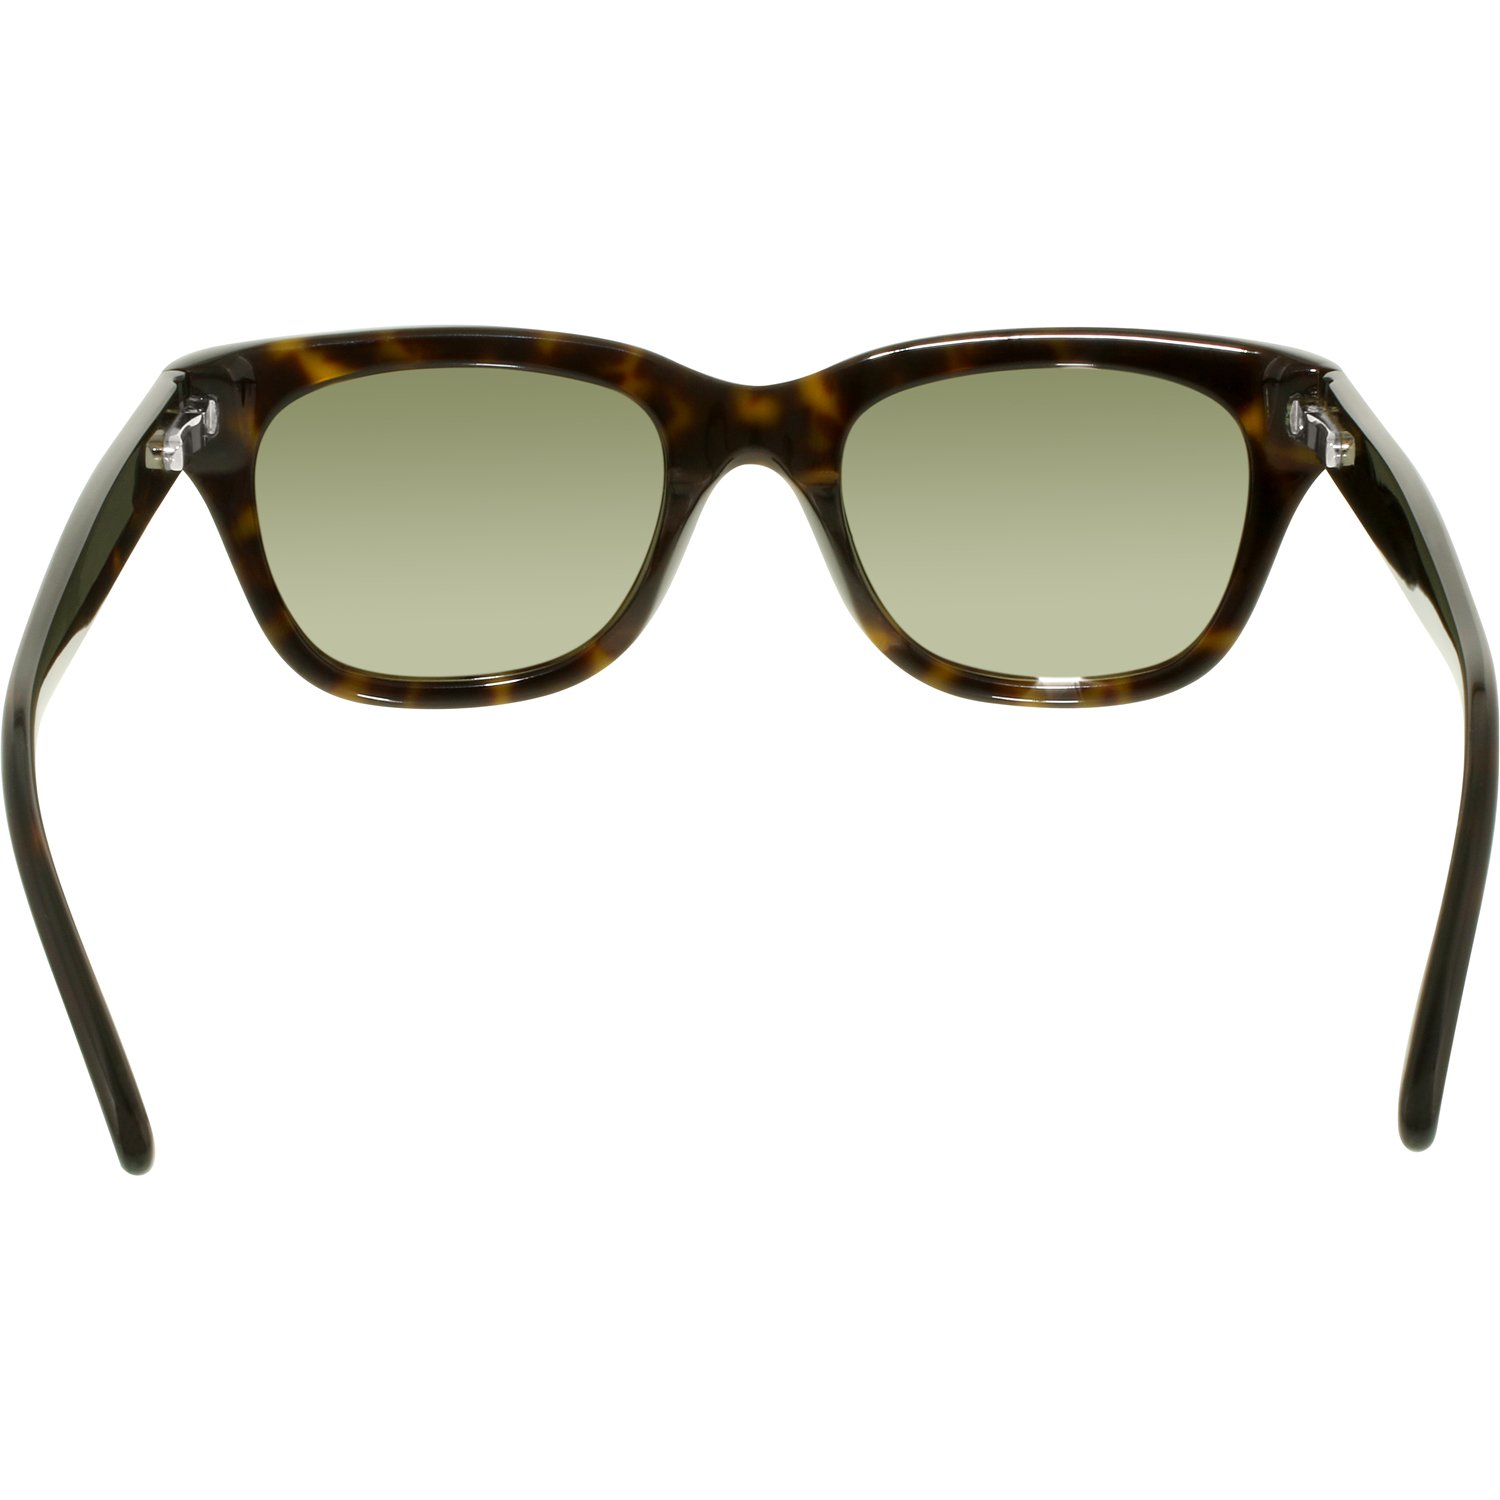 d21c397d77 Tom Ford - Tom Ford Men s Snowdon FT0237-52N-52 Brown Square Sunglasses -  Walmart.com